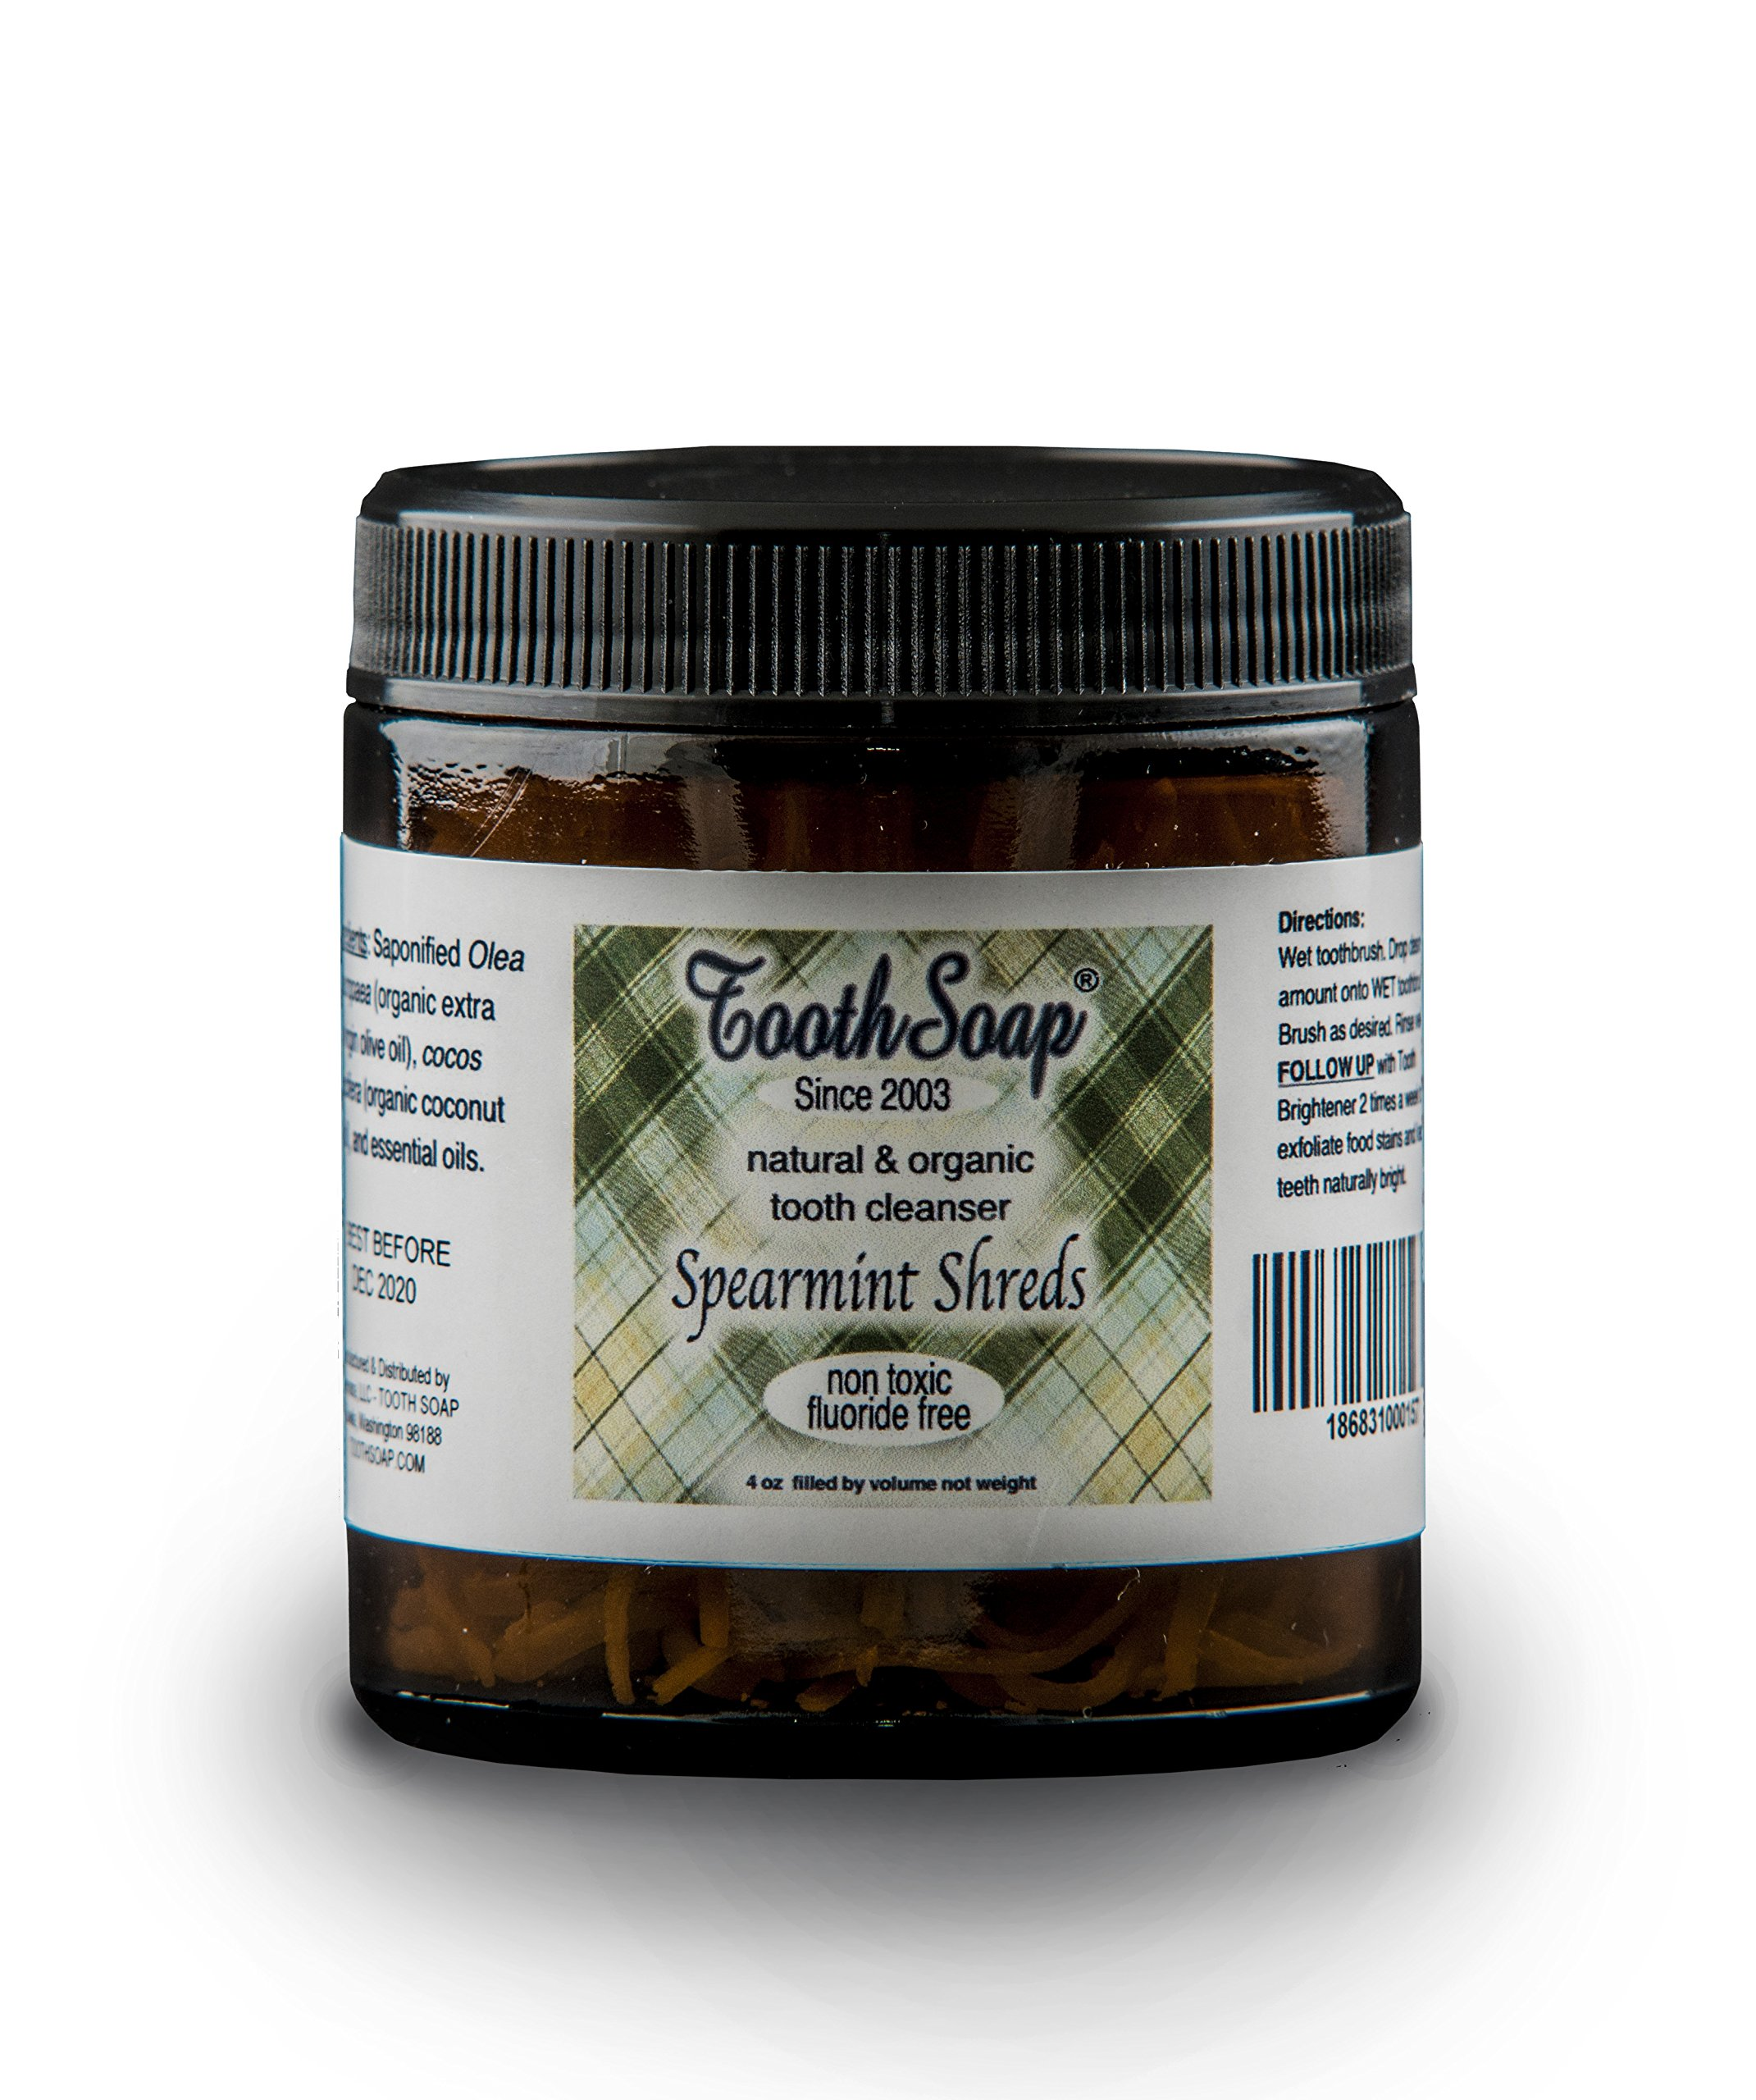 Tooth Soap – Spearmint Shreds – 4 oz | All Natural, Fluoride-Free Tooth & Gum Cleaner | Enhanced with Organic Coconut & Extra Virgin Olive Oil with Essential Oils (Spearmint Shreds)